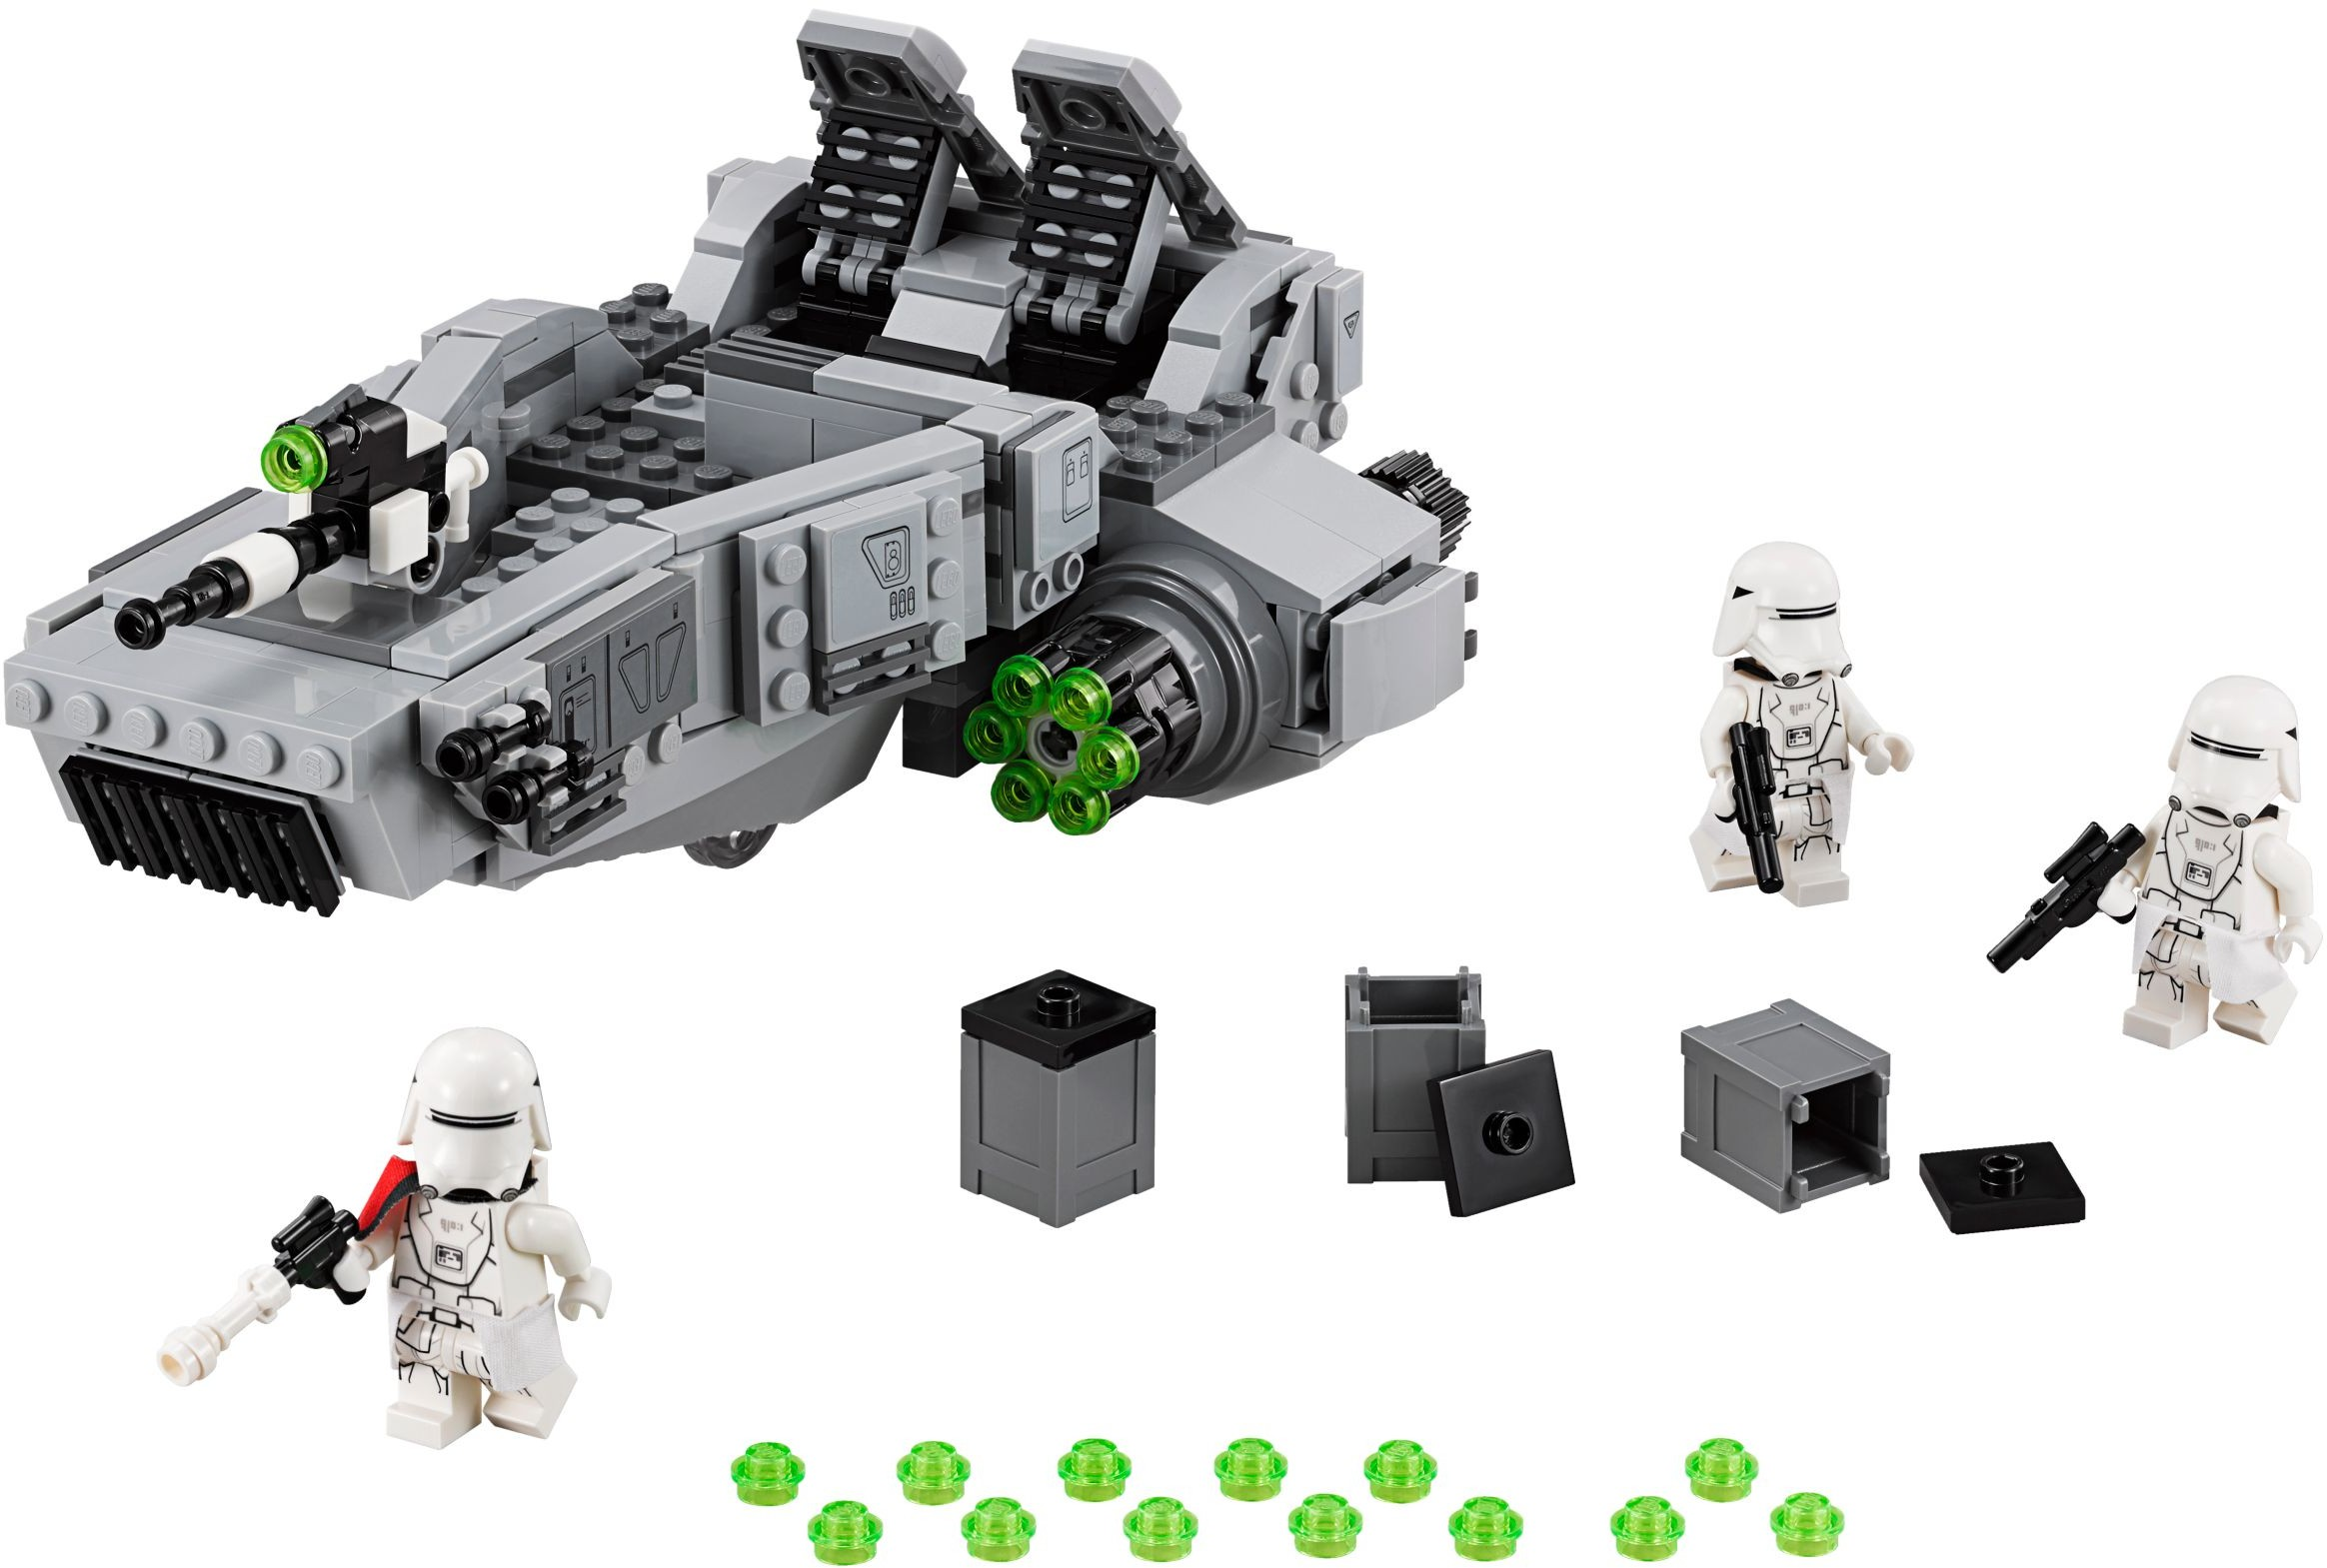 Star Wars Lego Toys : Star wars the force awakens how do sets compare to